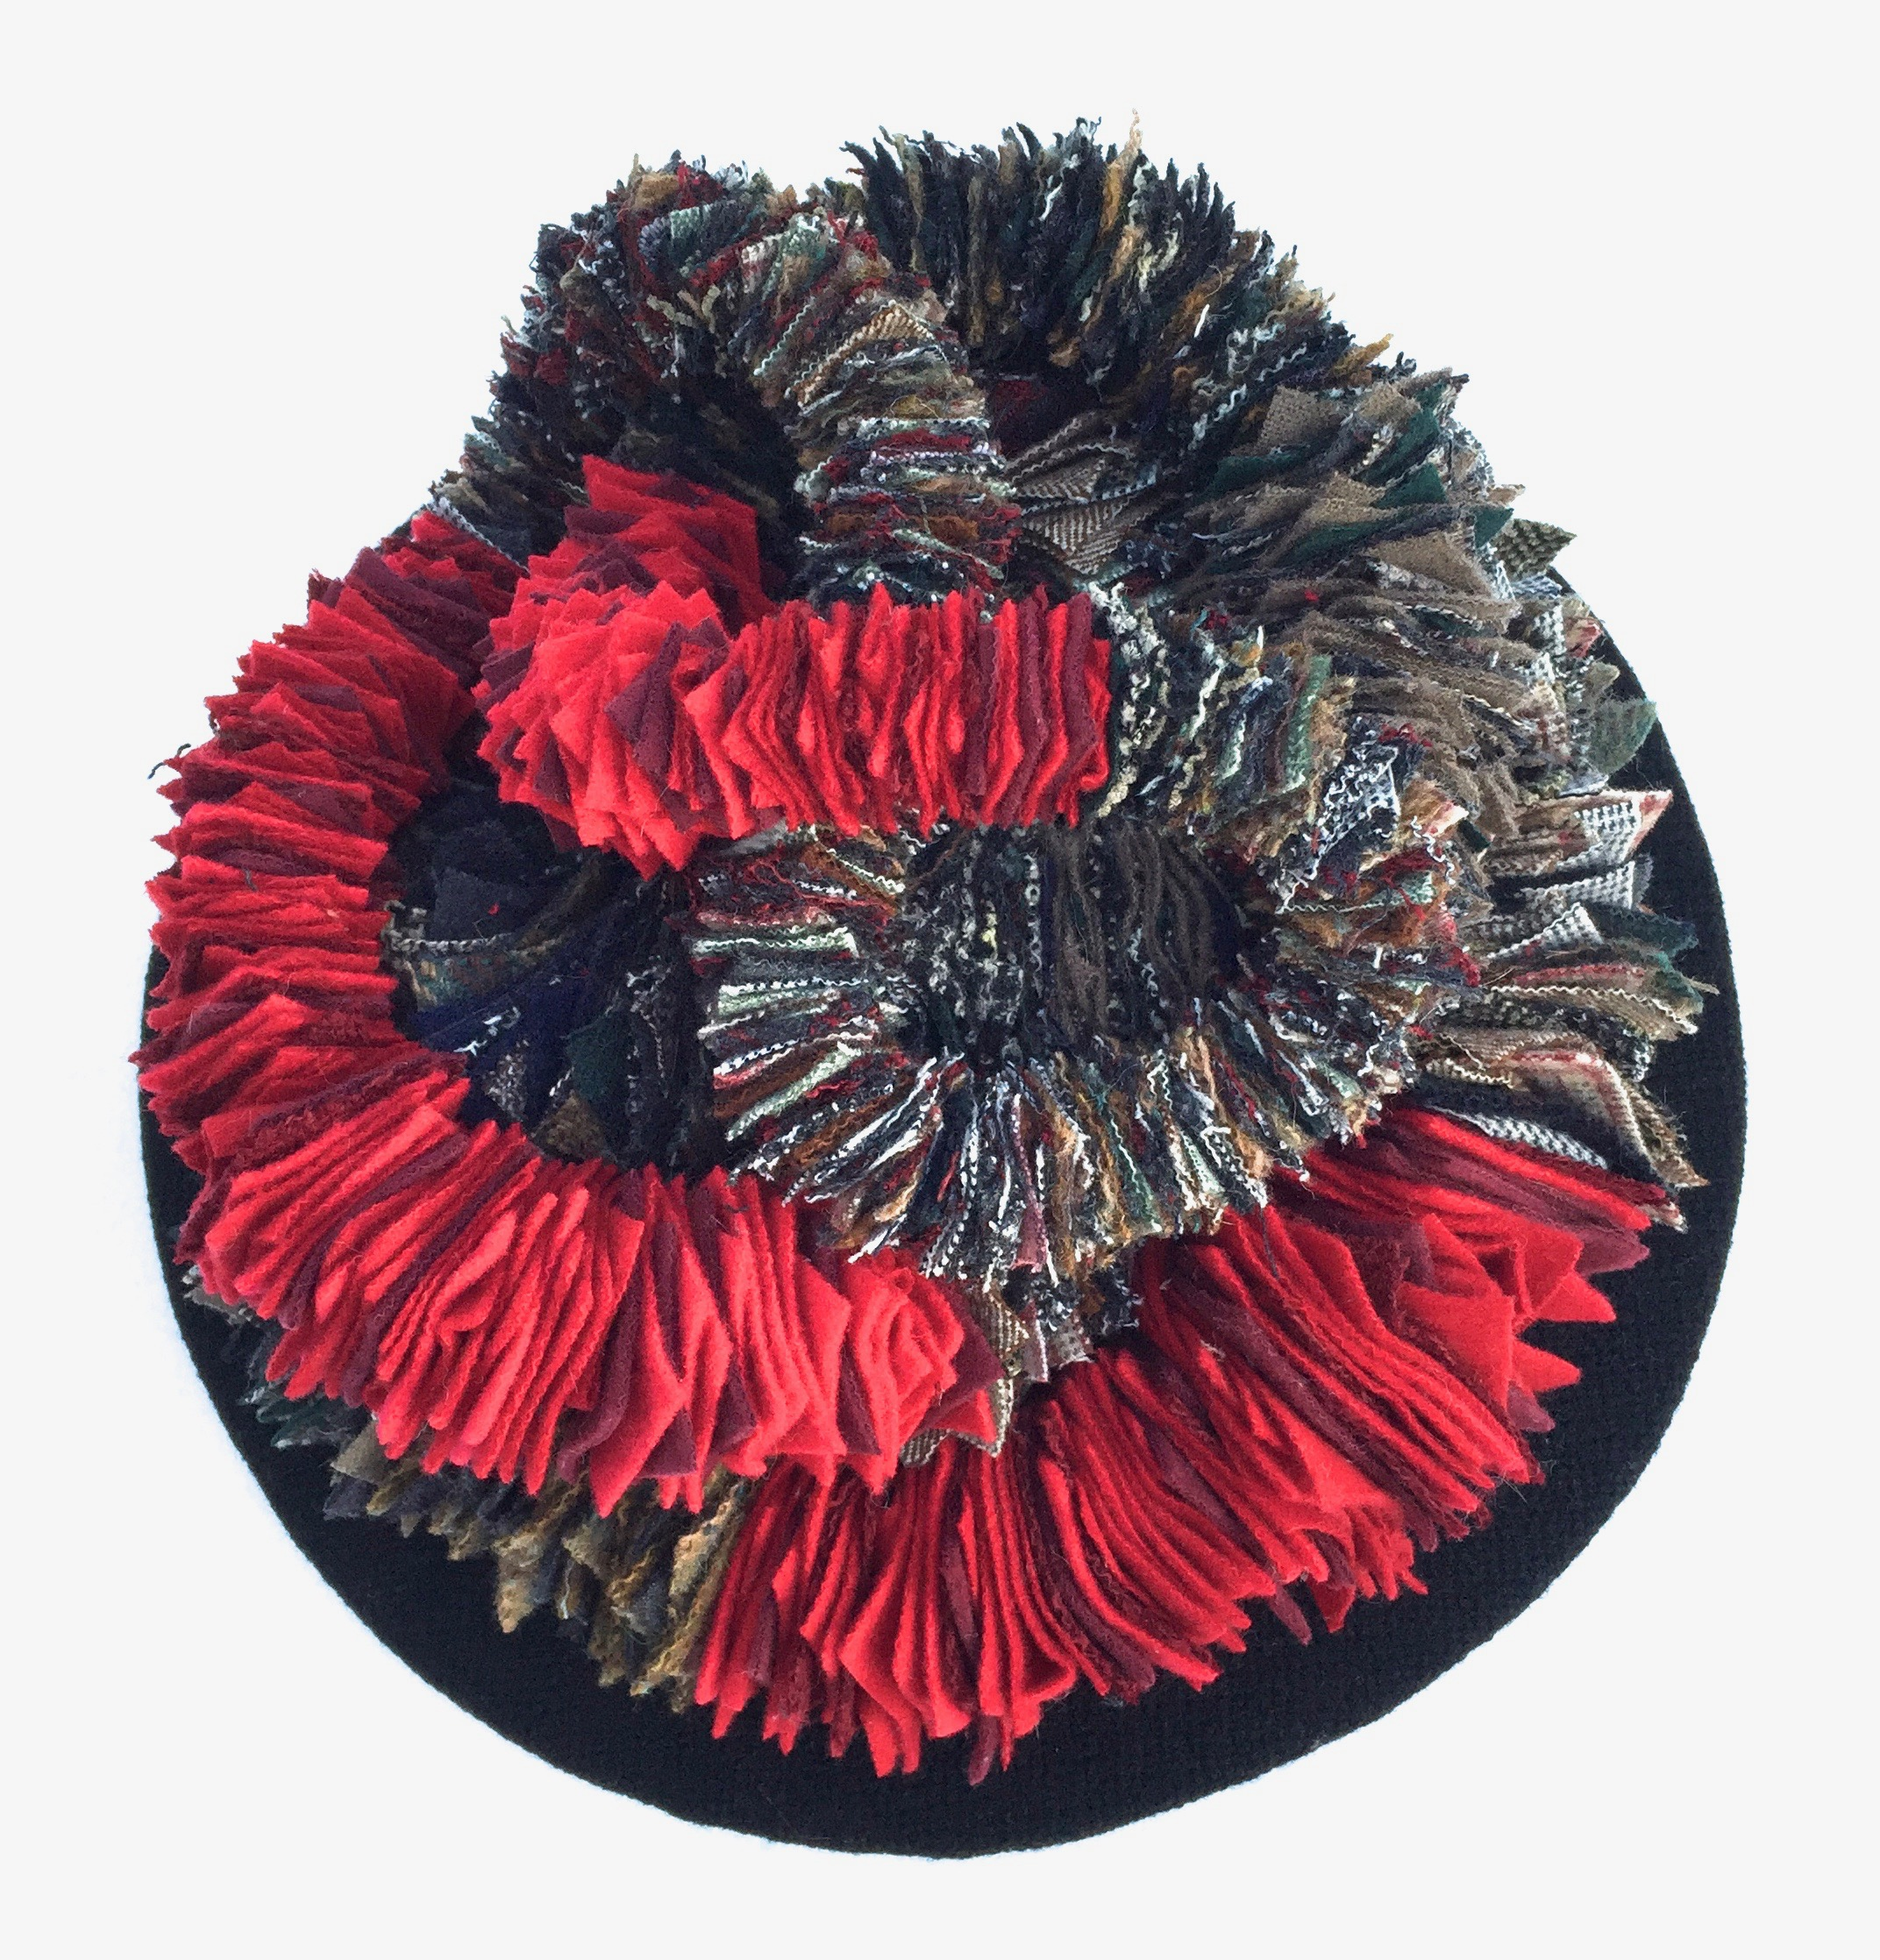 """It Is What It Is  2016 8.5"""" height x 12.5"""" diameter. Wool and wool blend woven fabric, hand cut and sewn, set on wool covered disc.A rrangement variable."""